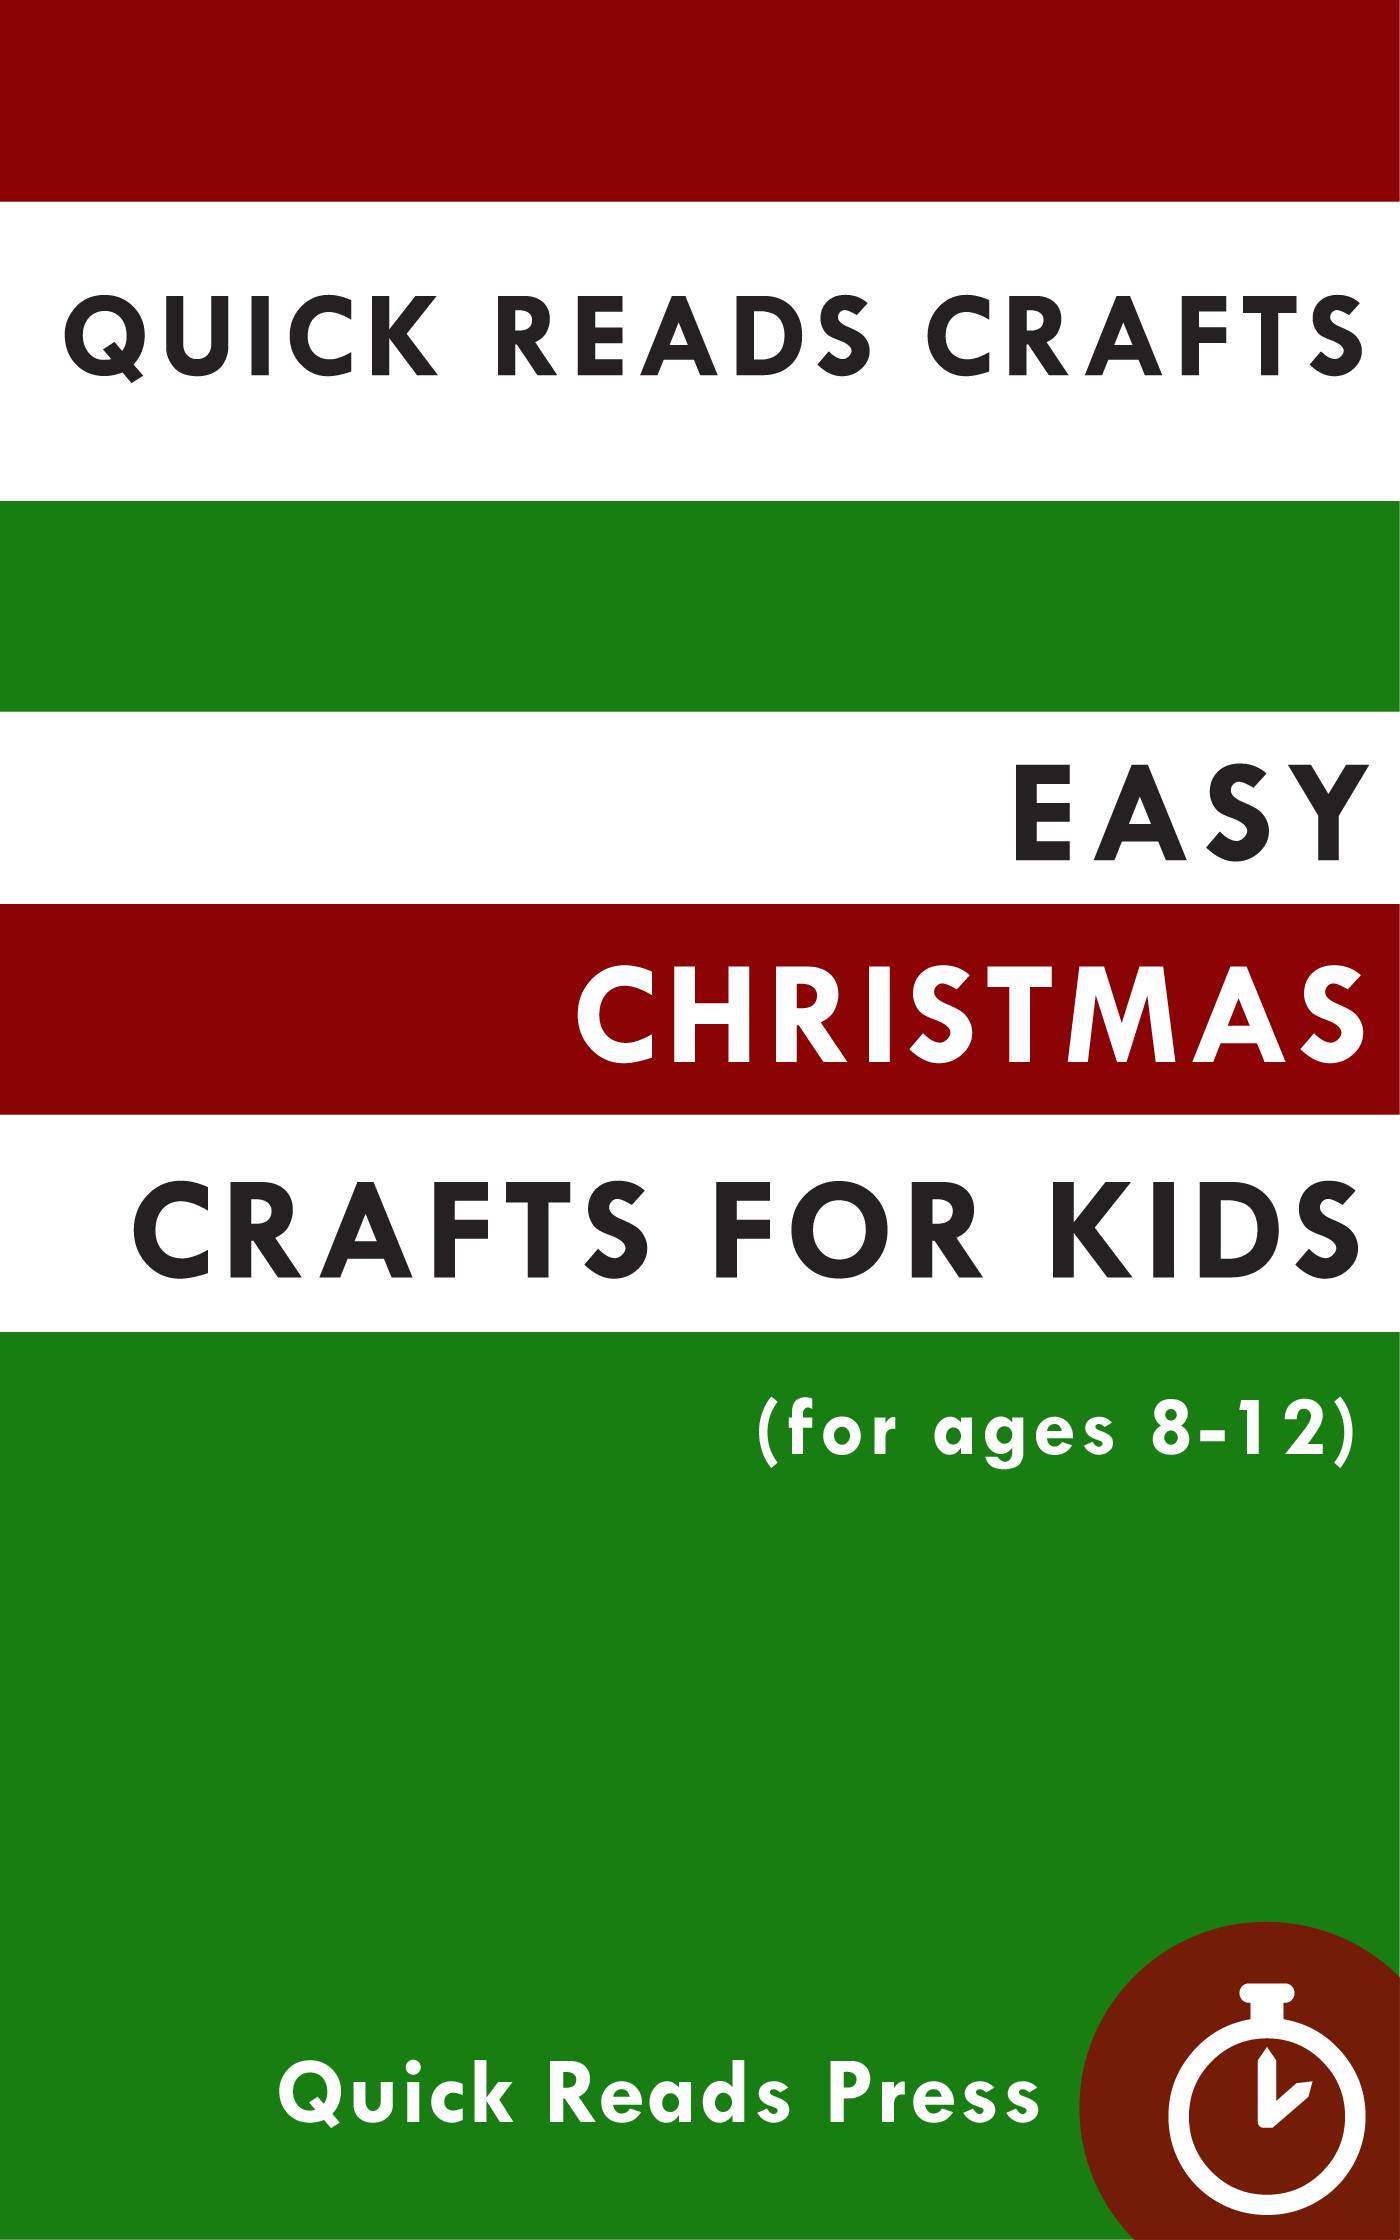 Quick Reads Crafts Easy Christmas For Kids Ages 8 12